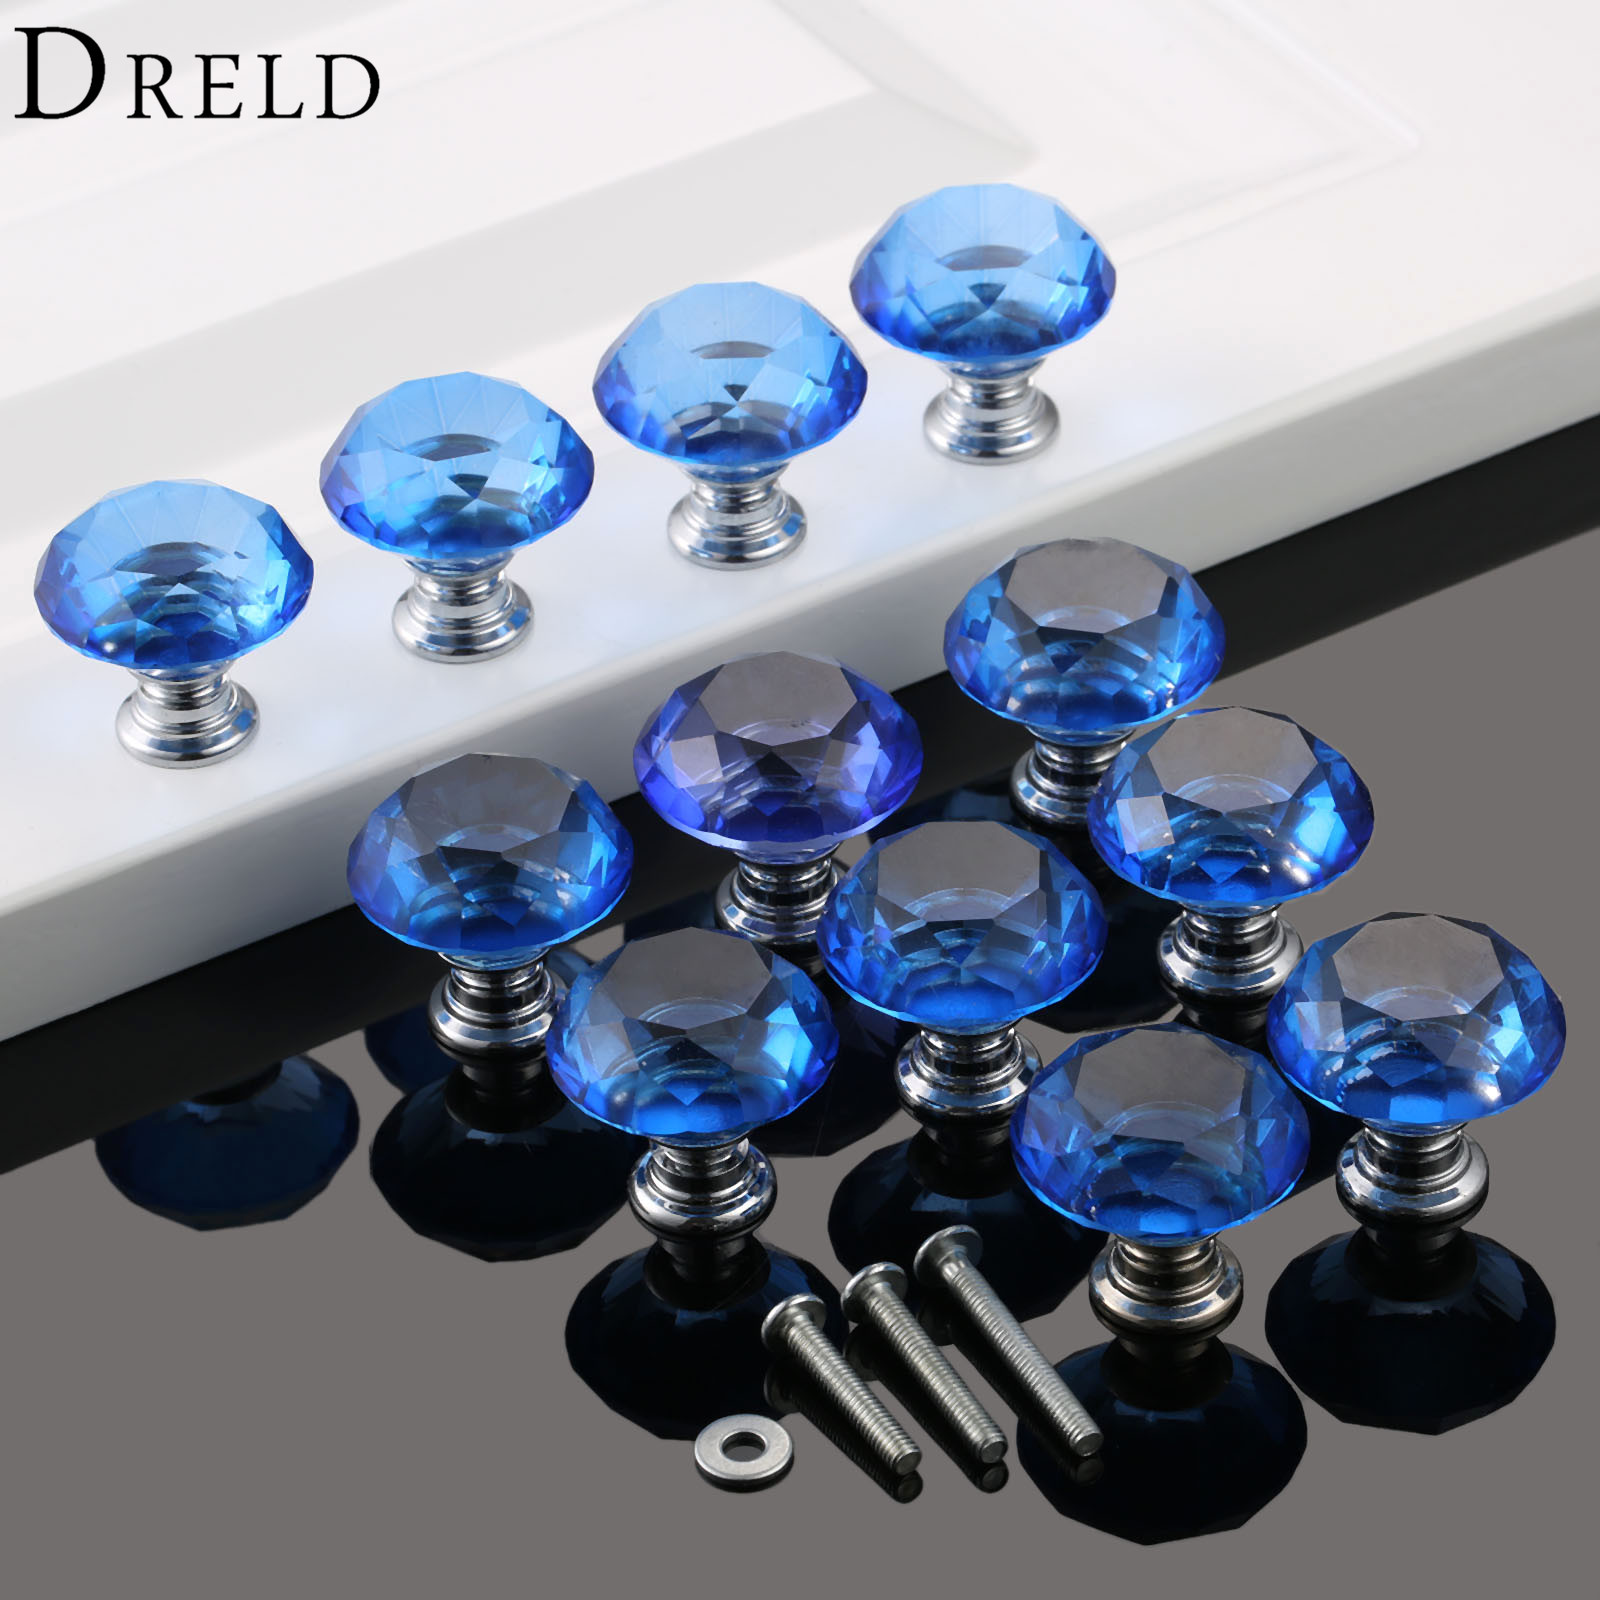 DRELD 12Pcs Blue Diamond Cabinet Cupboard Wardrobe Drawer Door Handles Crystal Glass 30mm Pulls Knobs Kitchen Furniture Handles 10 pcs 30mm diamond shape crystal glass drawer cabinet knobs and pull handles kitchen door wardrobe hardware accessories